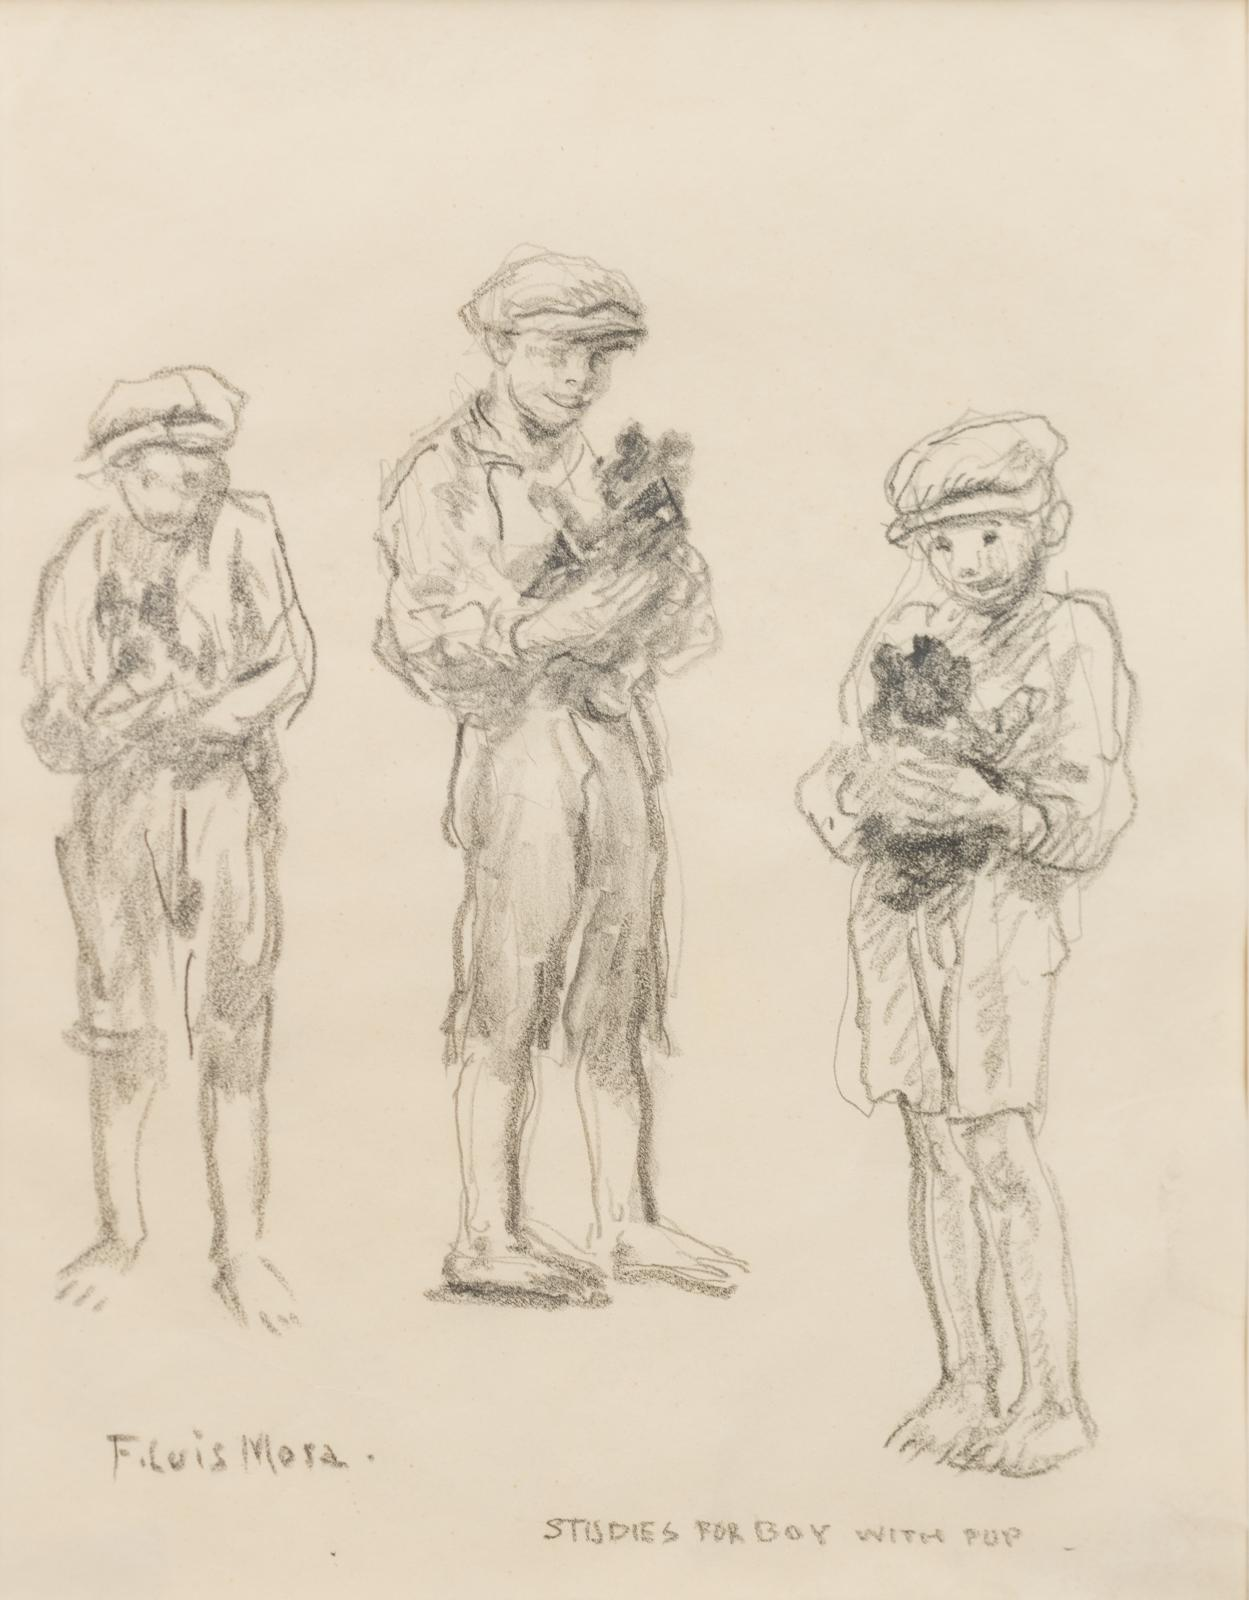 Study For Boy with Pup